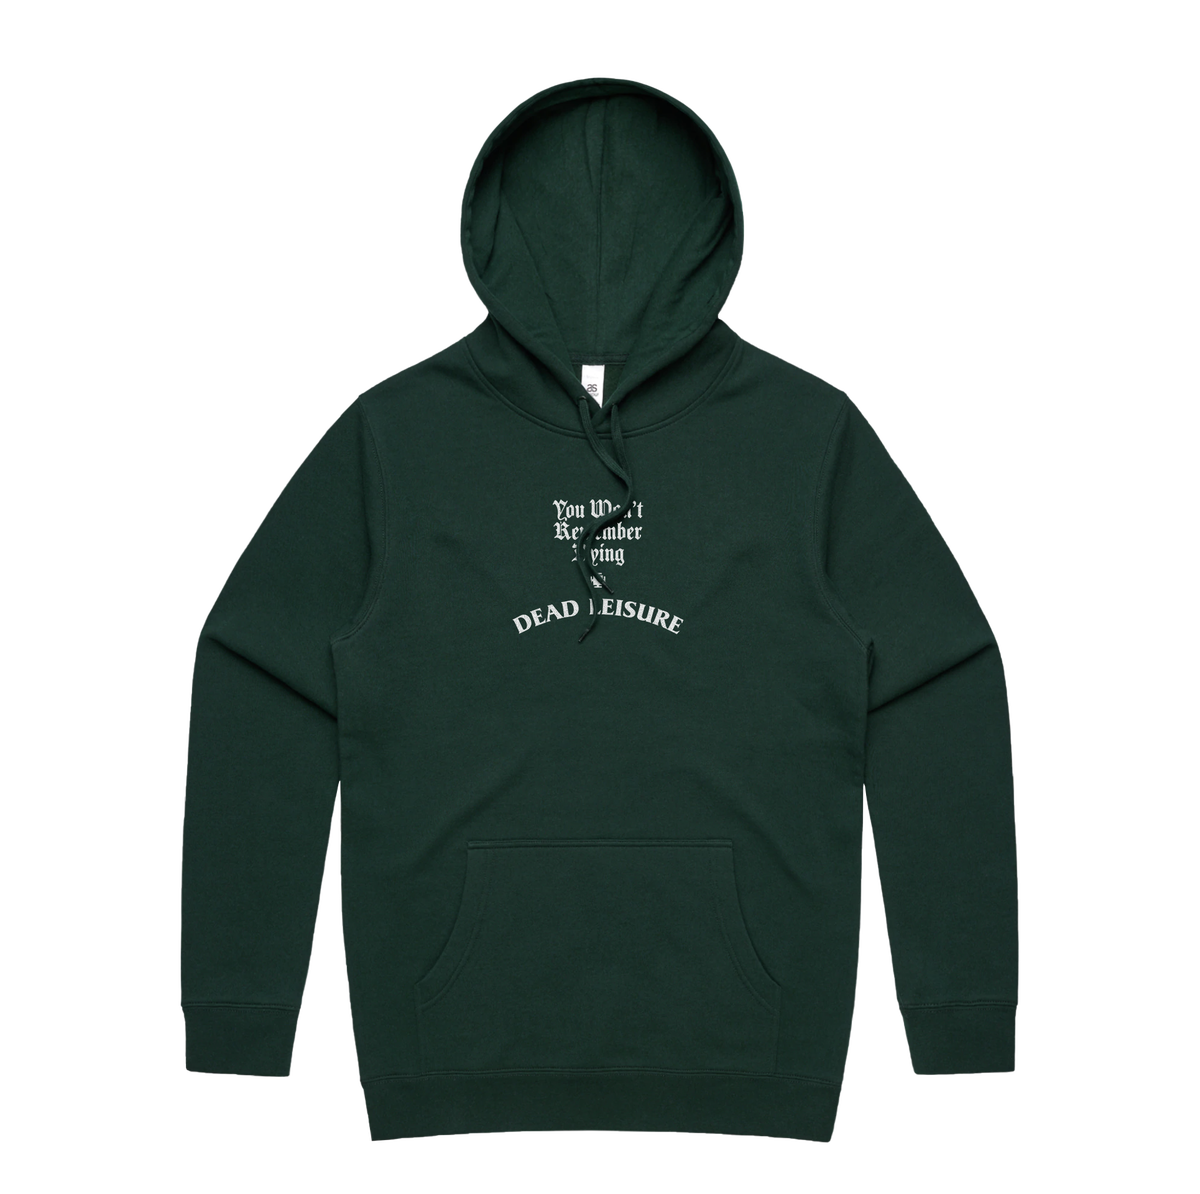 YWRD Pullover Hoodie - Green